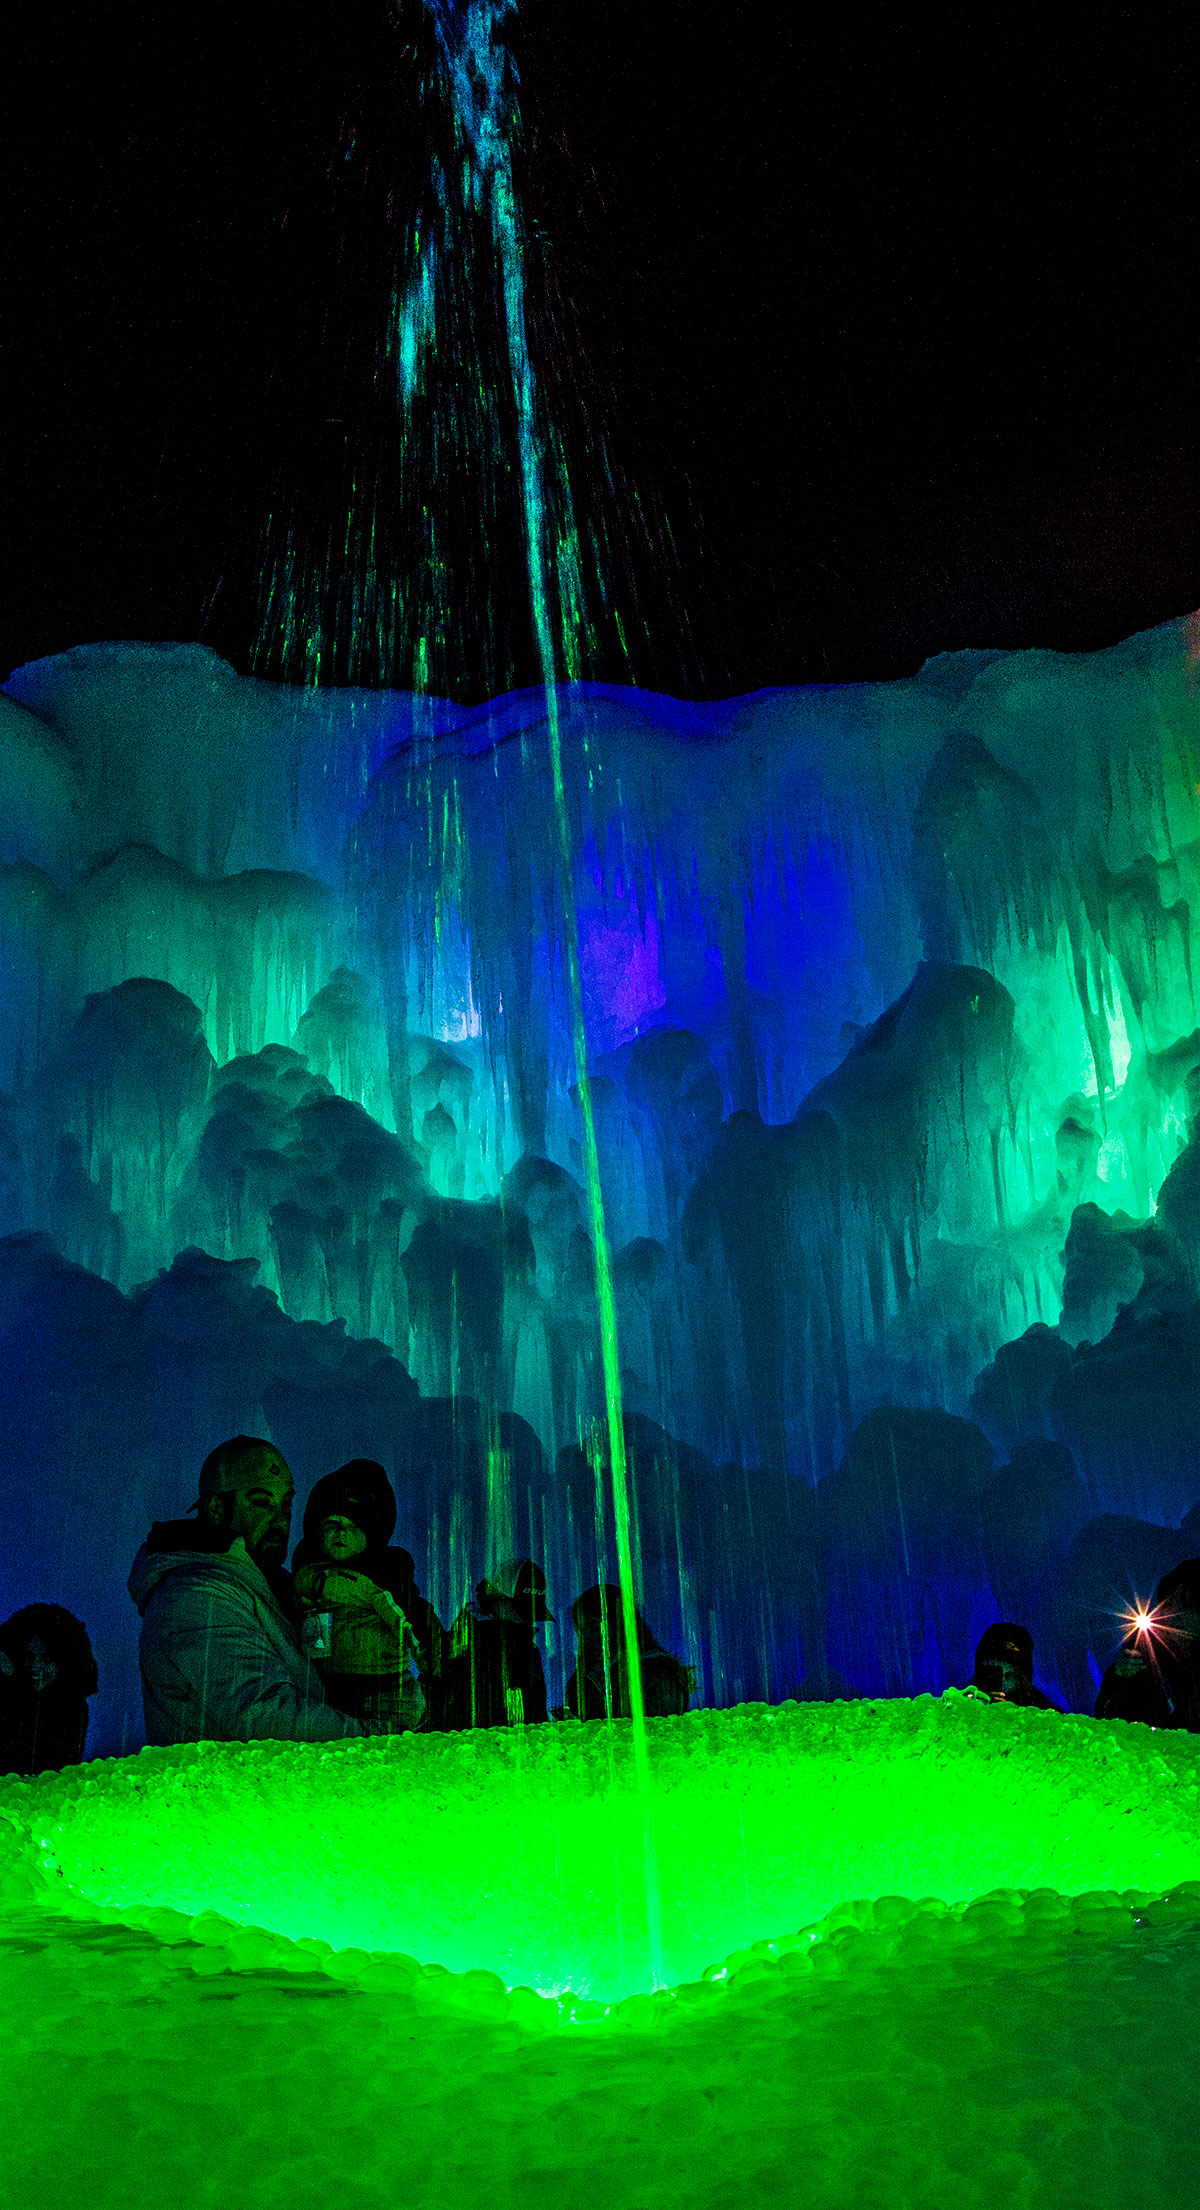 ice-castles-fountain-lincoln-nh-white-mountains